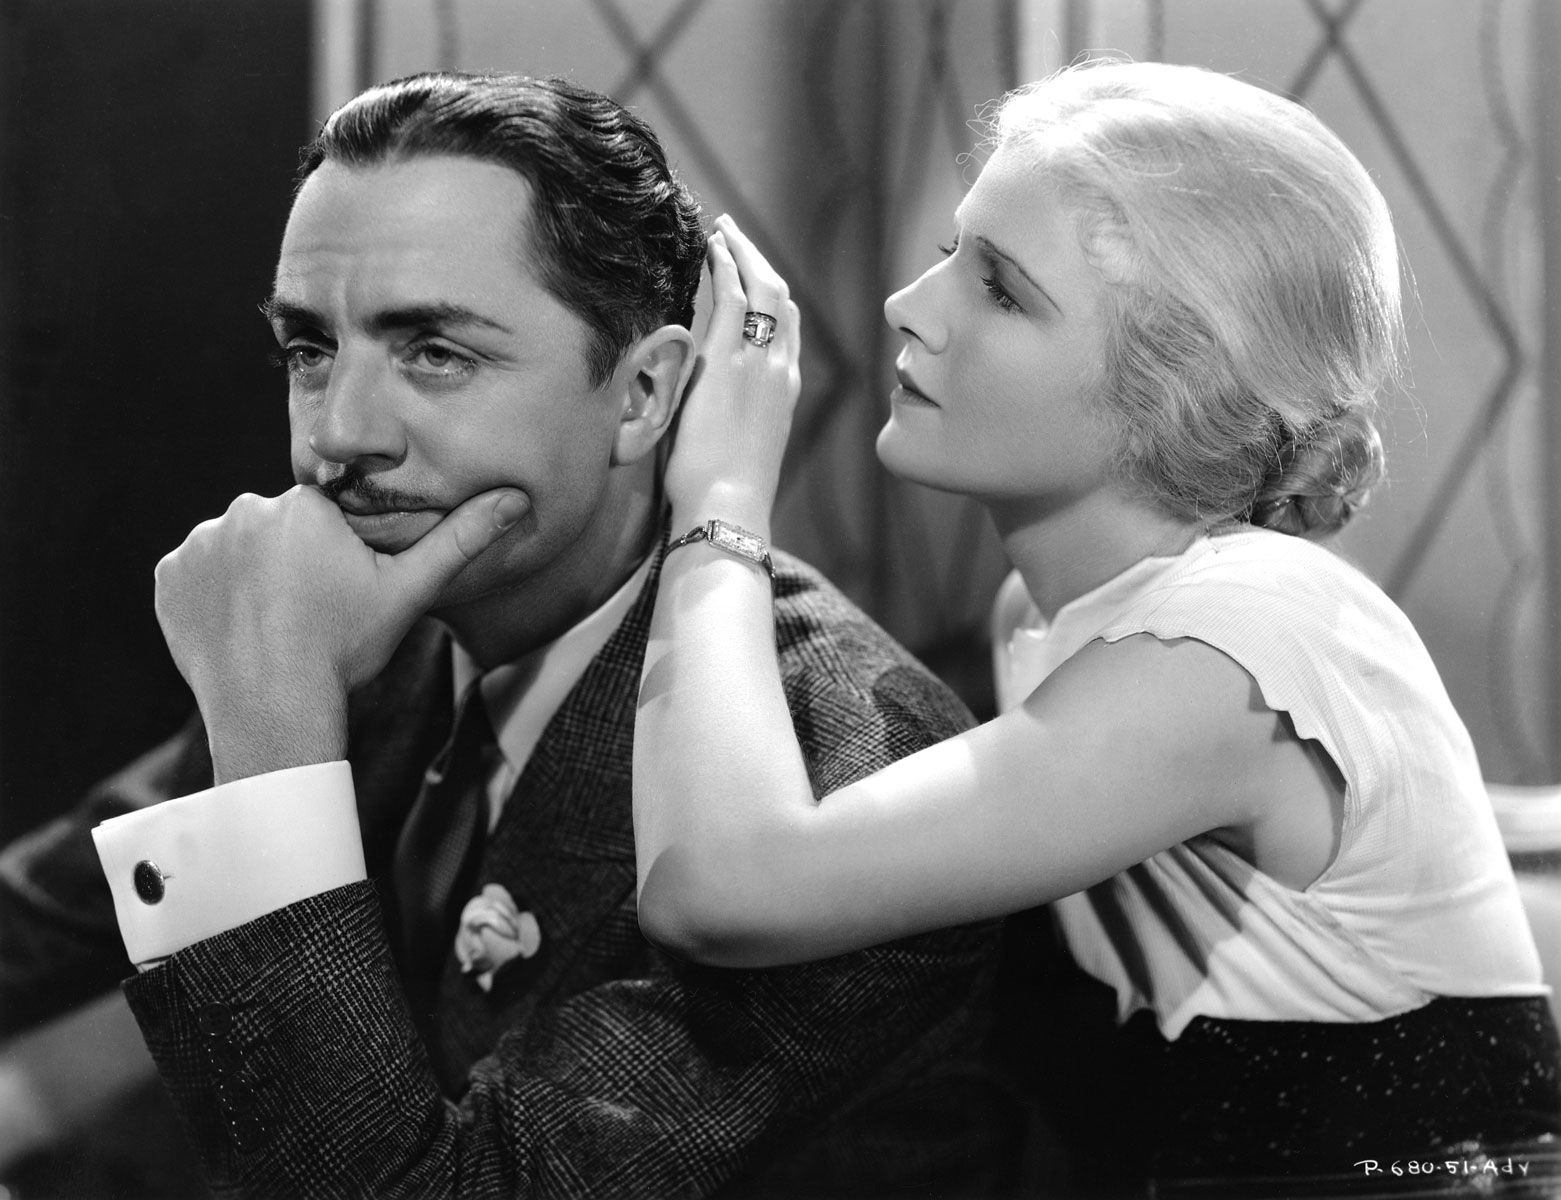 #TCMFF 2020: Special Home Edition, My Picks